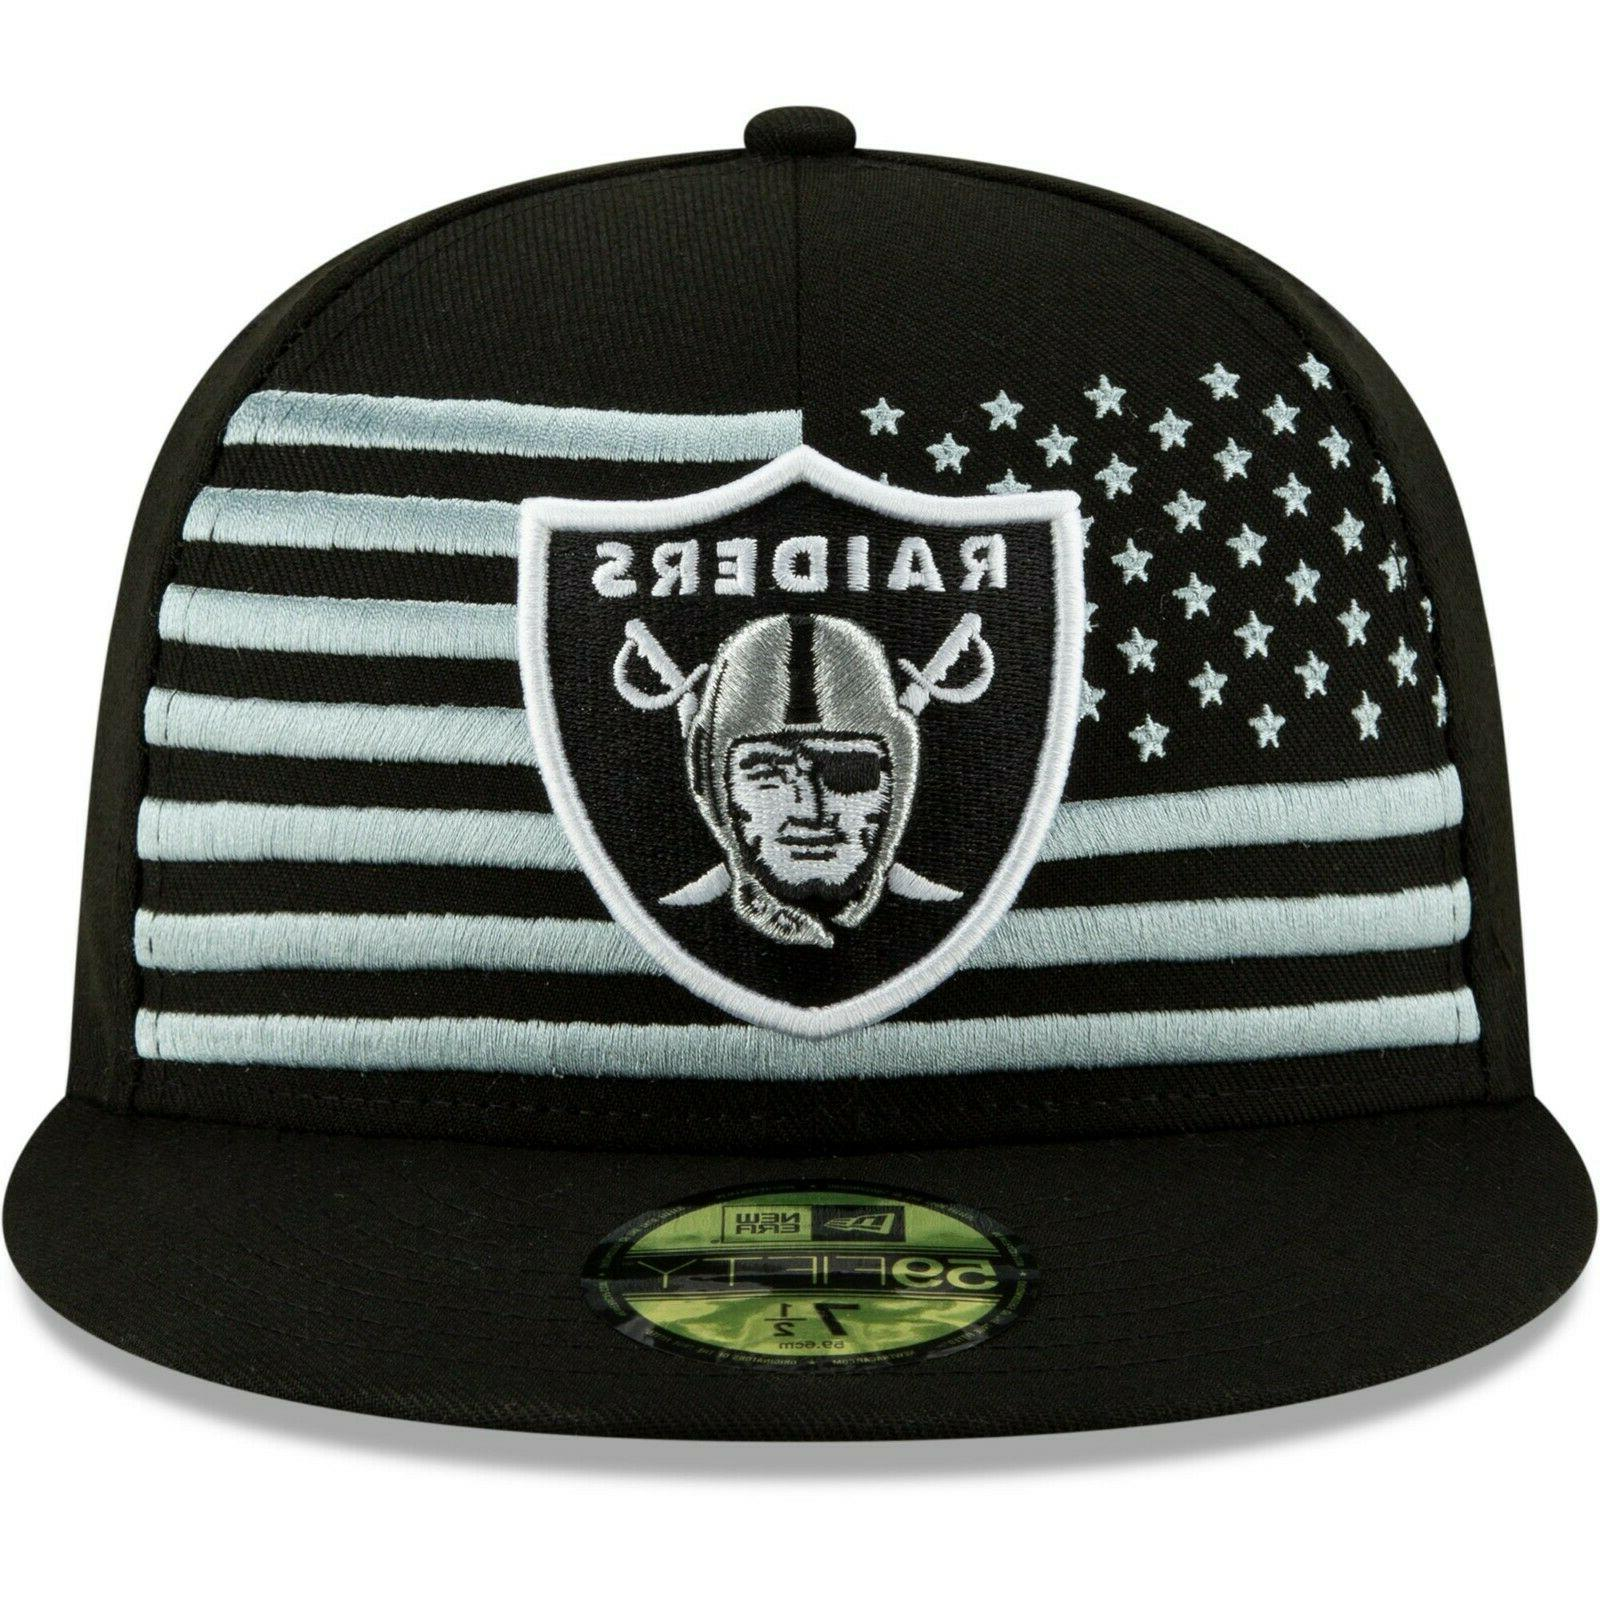 Oakland Raiders New 2019 NFL Draft On-Stage 59FIFTY Fitted